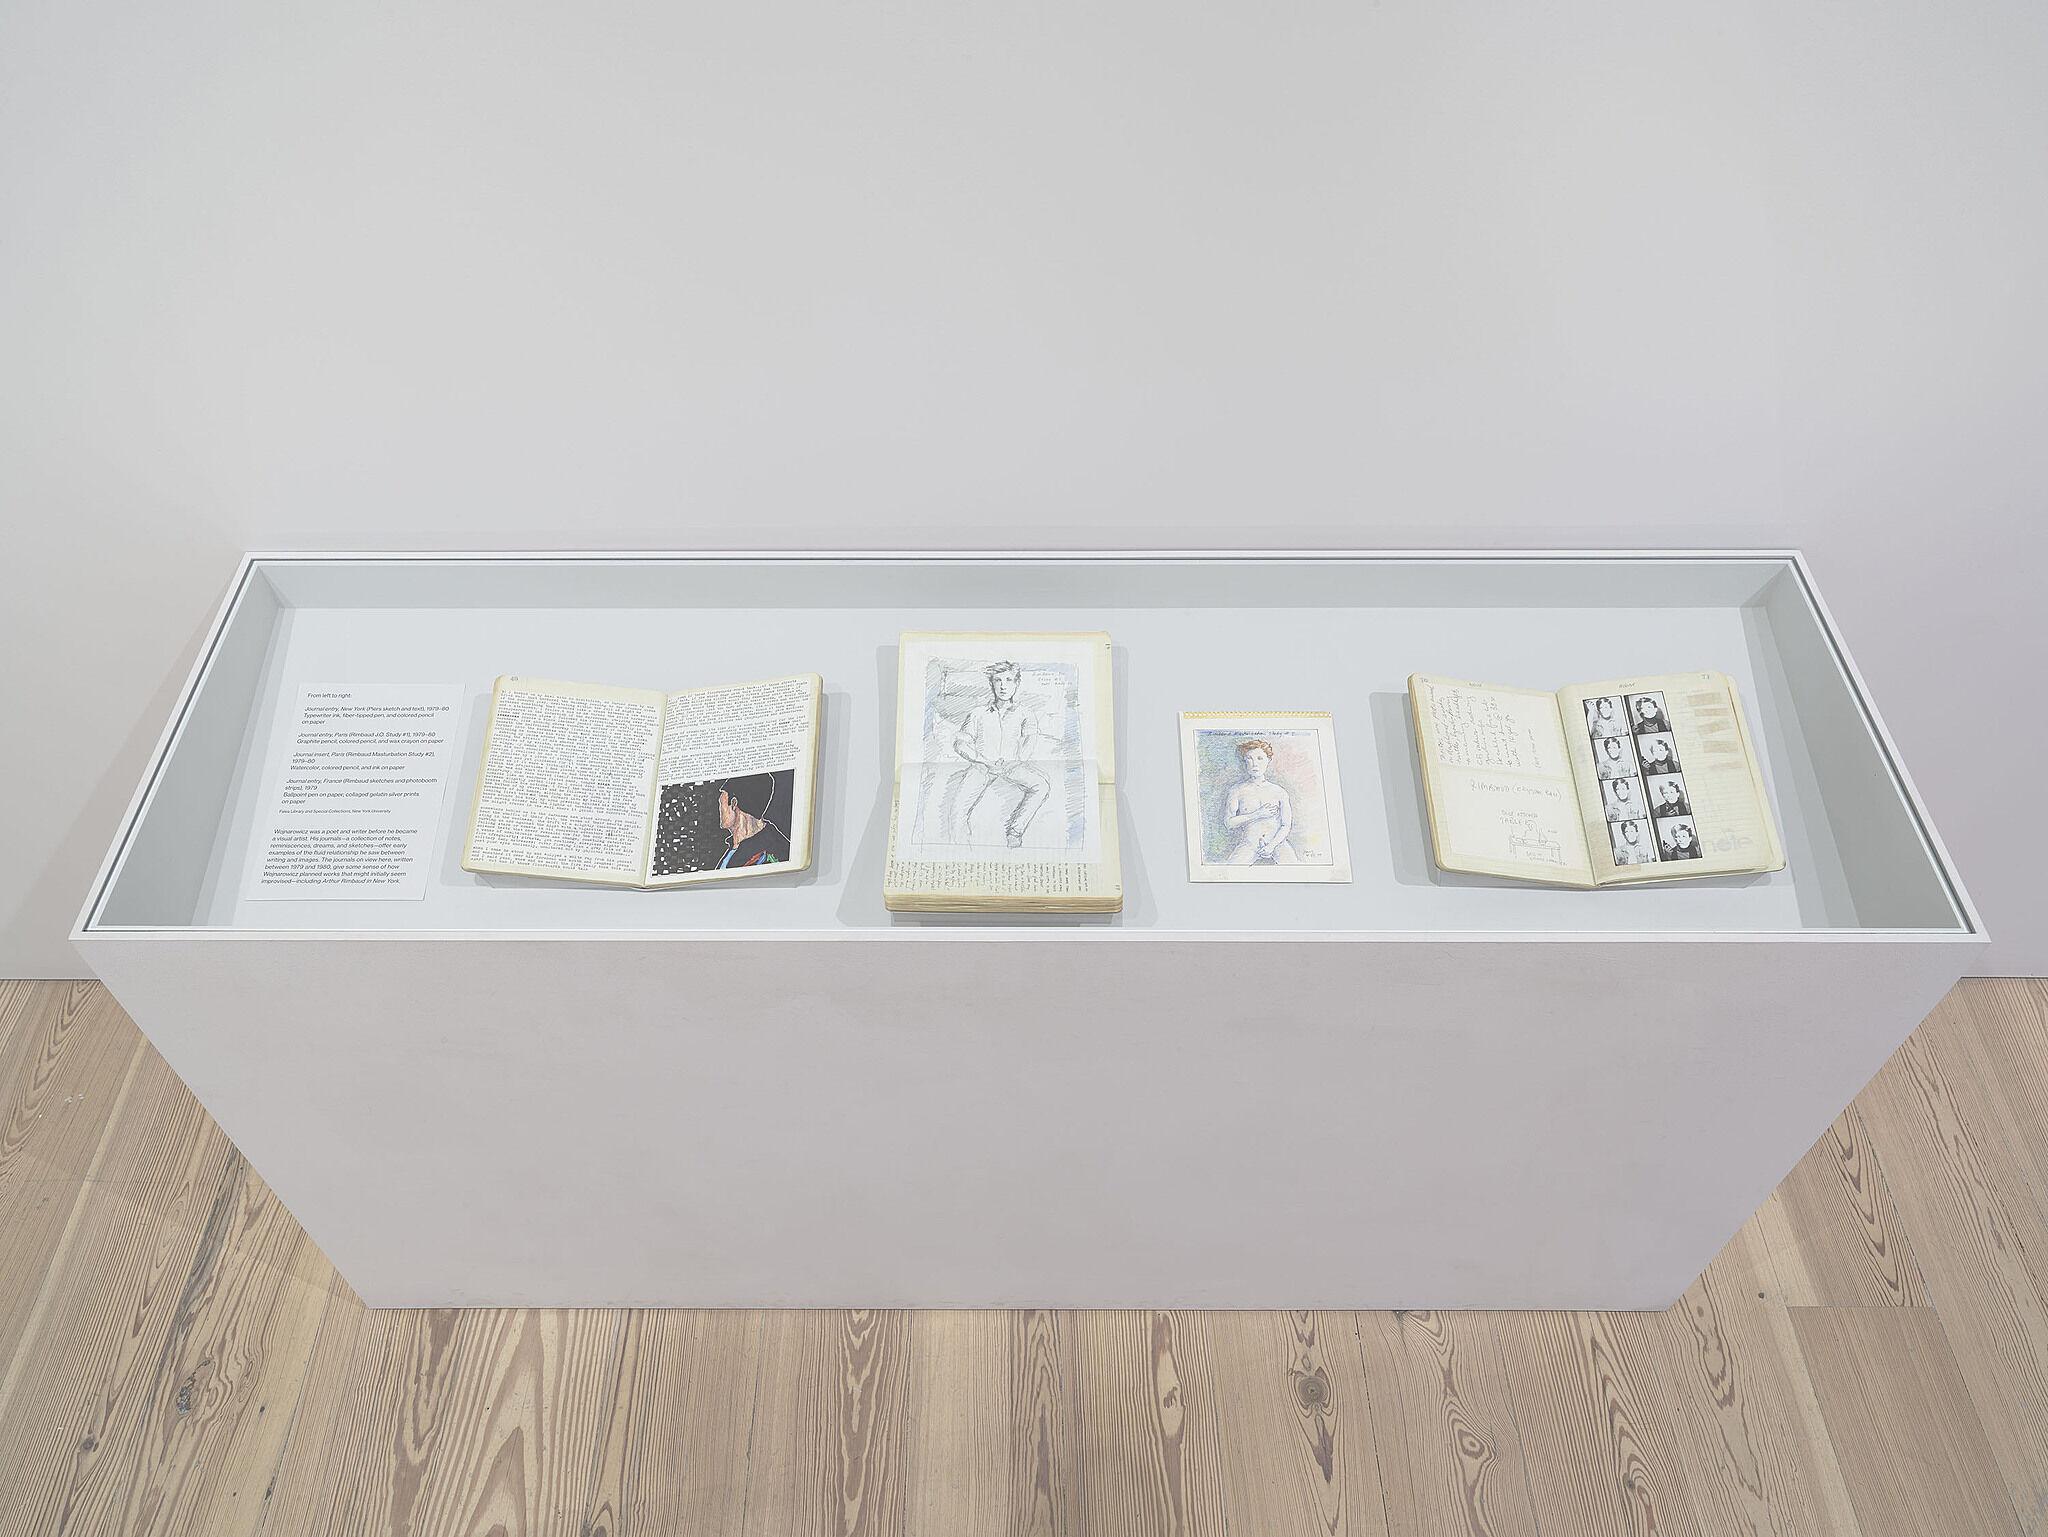 An image of a vitrine with journal pages in it